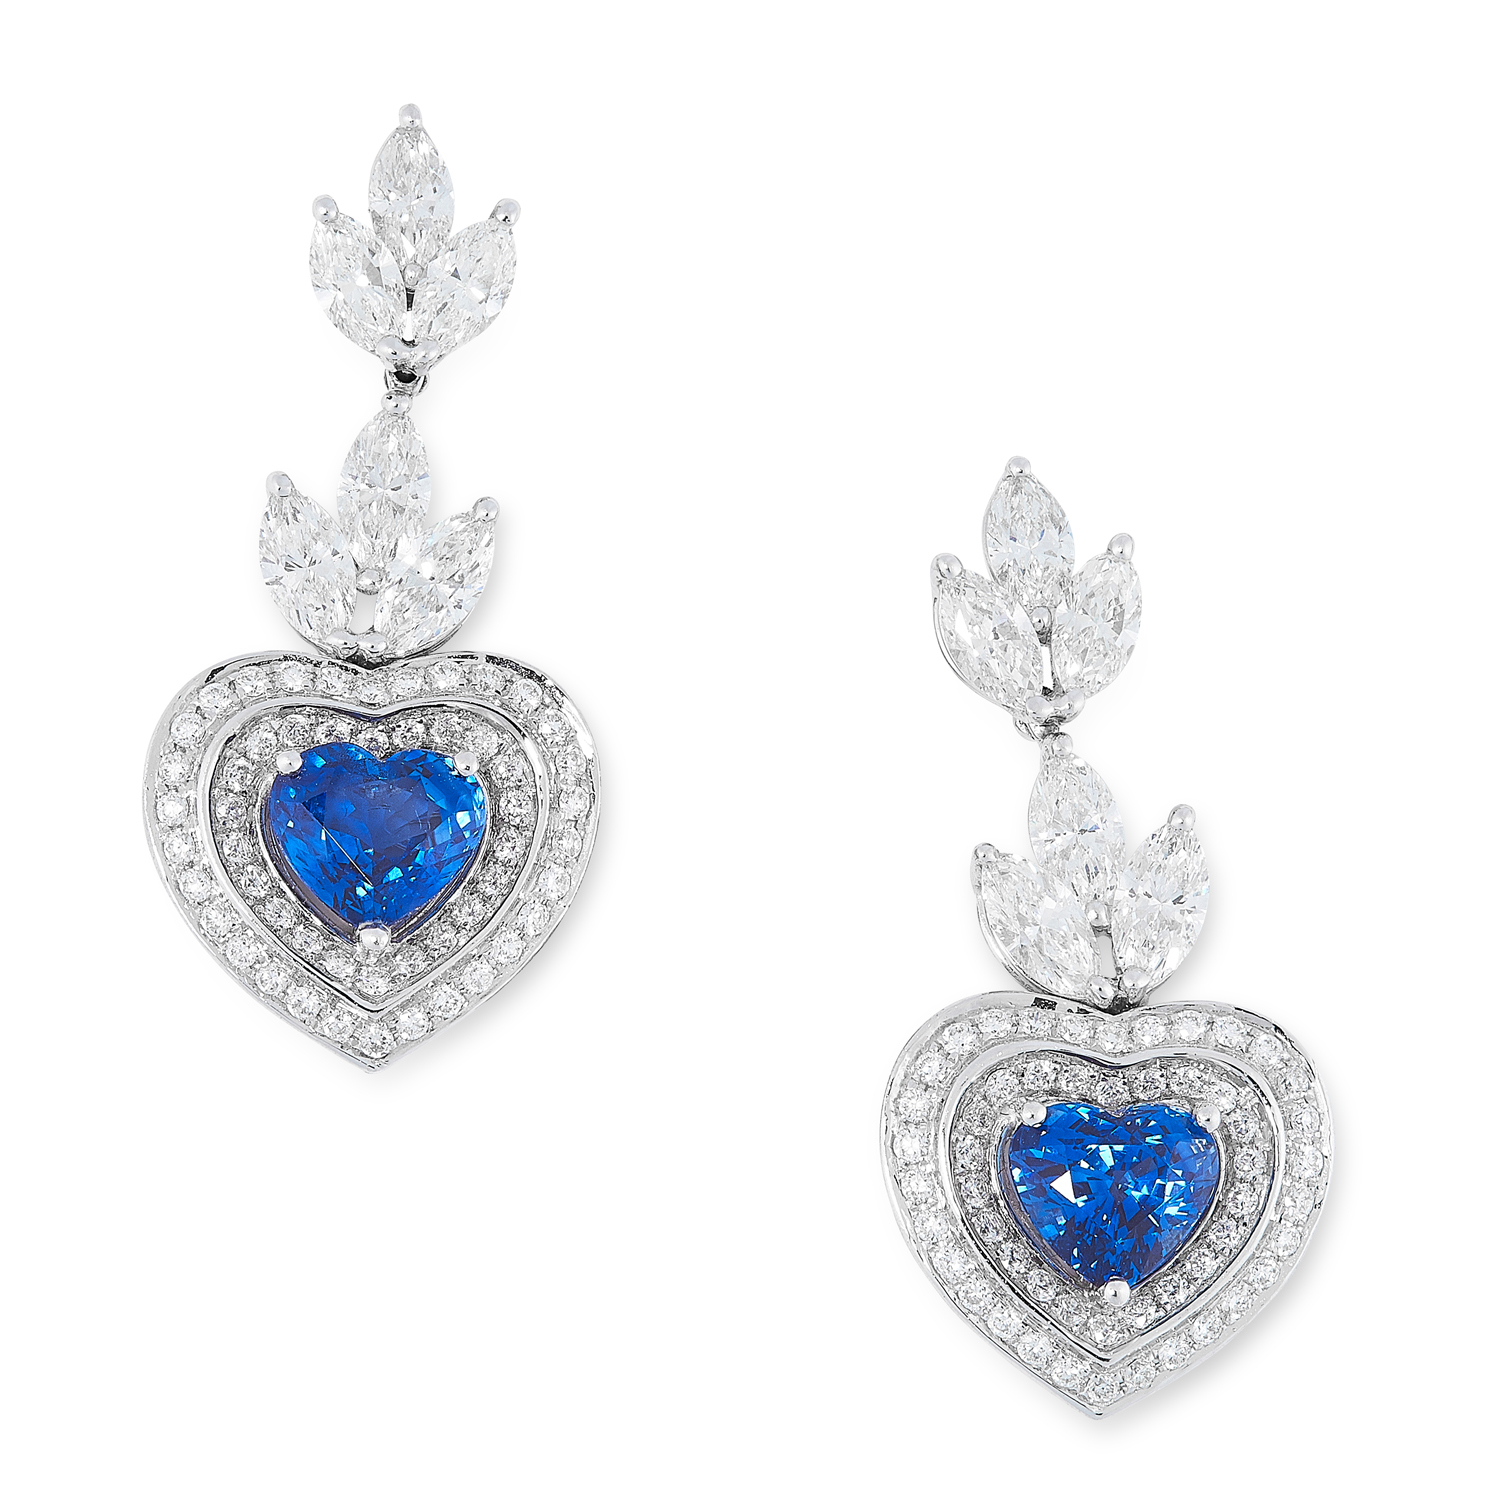 A PAIR OF SAPPHIRE AND DIAMOND DROP EARRINGS each set with a row of marquise cut diamonds suspending